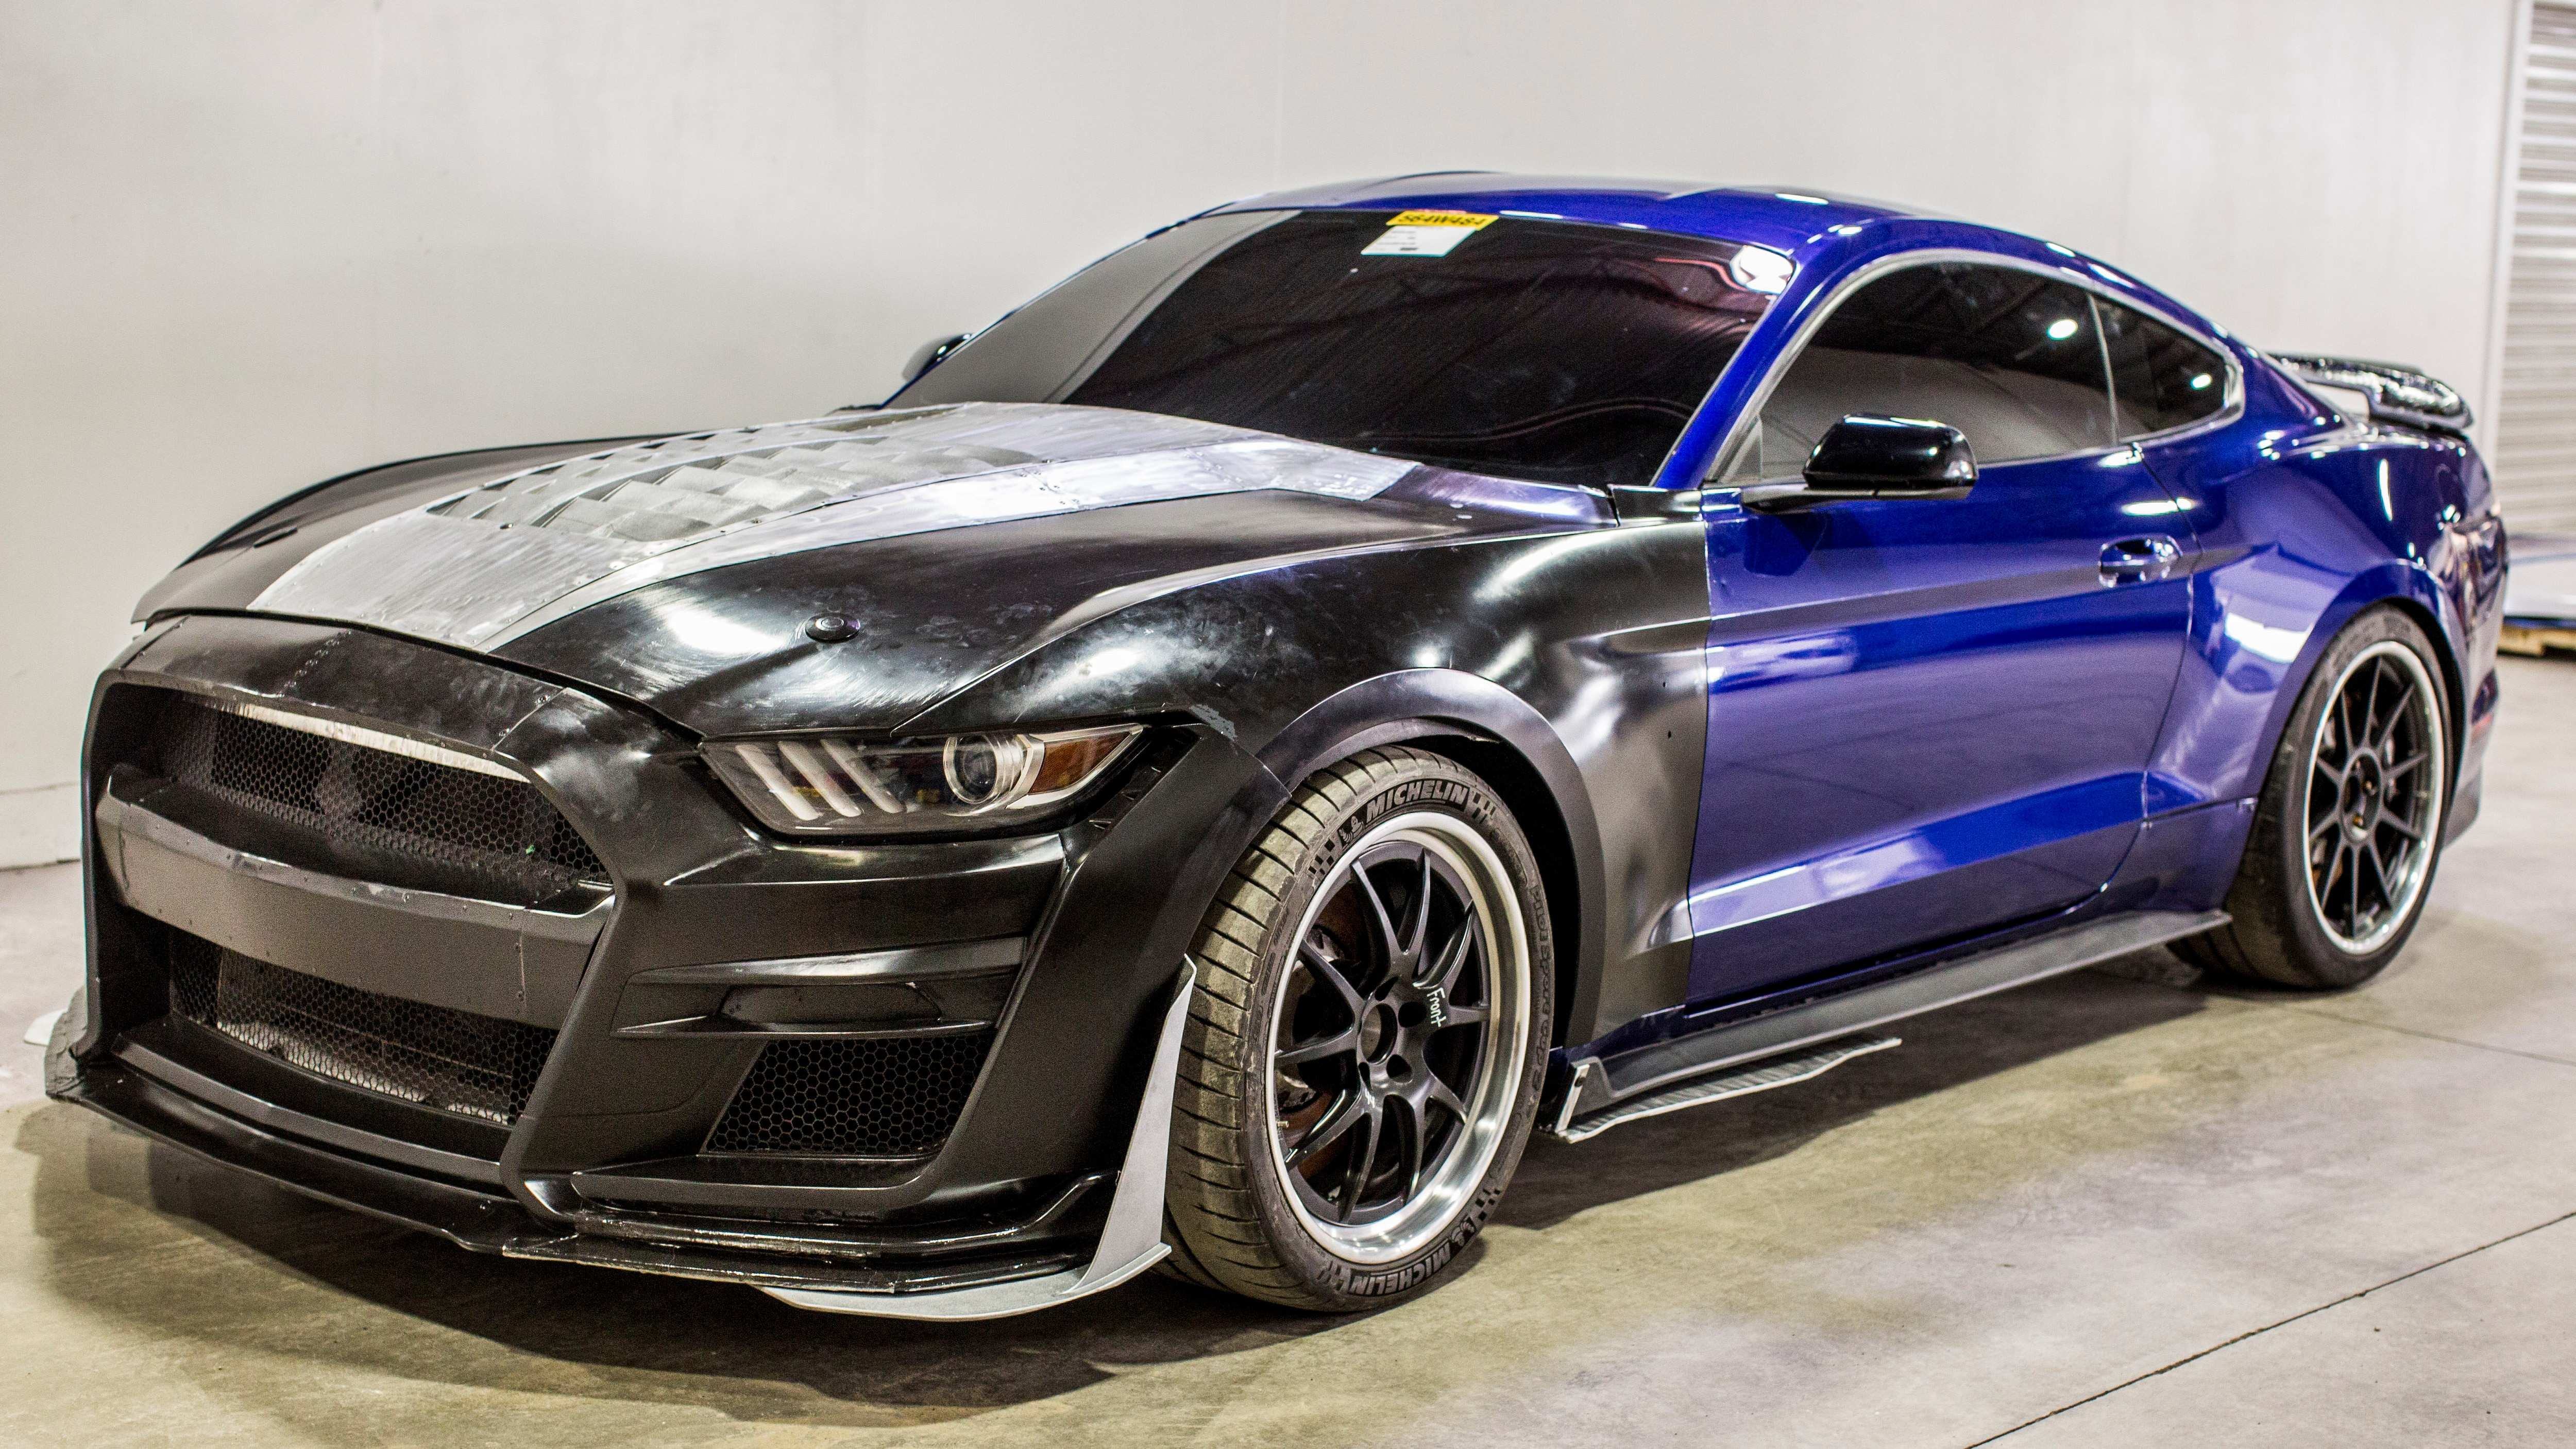 19 A Ford Gt500 Mustang 2020 Photos